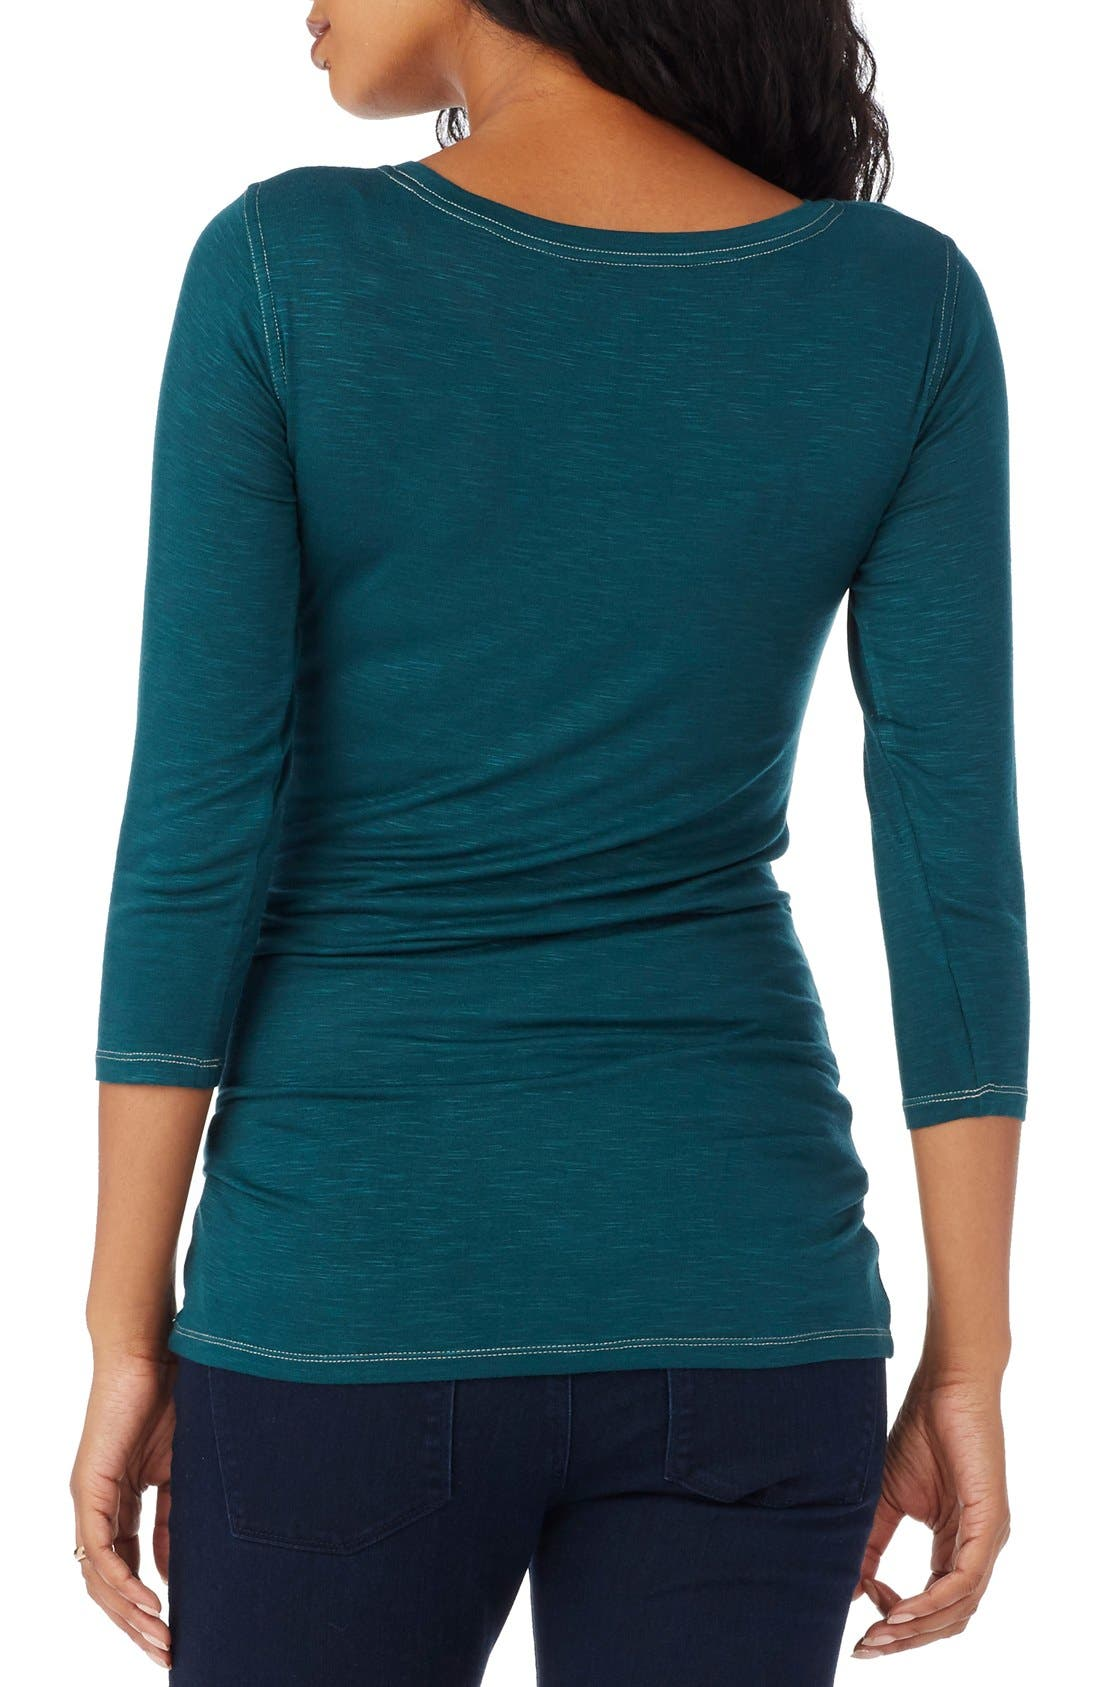 'Tribeca' Maternity Tee,                             Alternate thumbnail 5, color,                             EMERALD